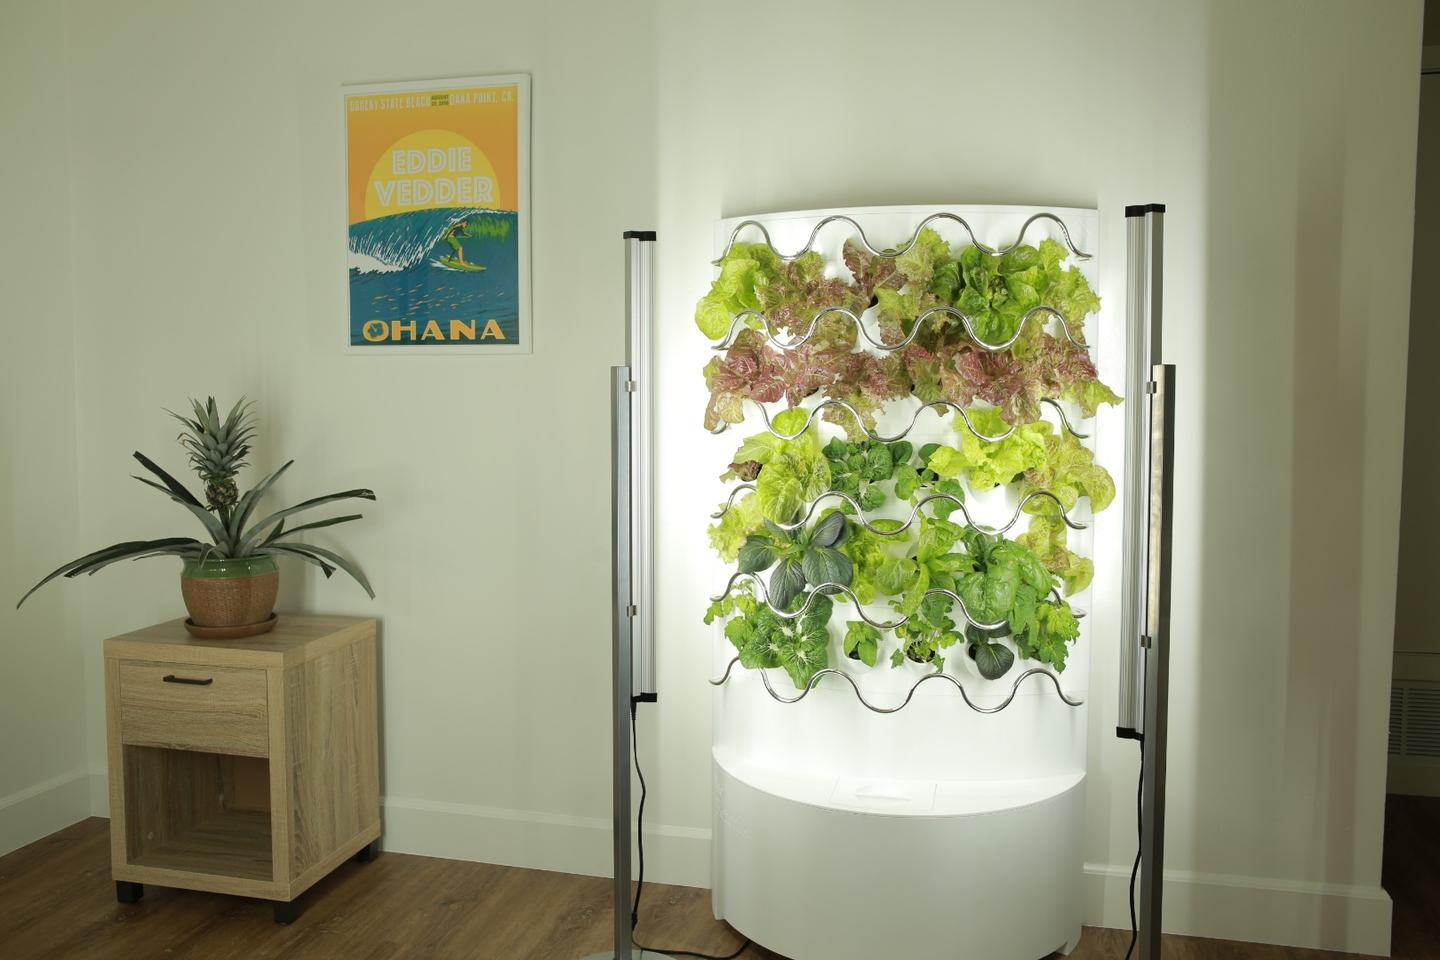 The iHarvest fully automated indoor hydroponics garden is currently raising production funds on Kickstarter